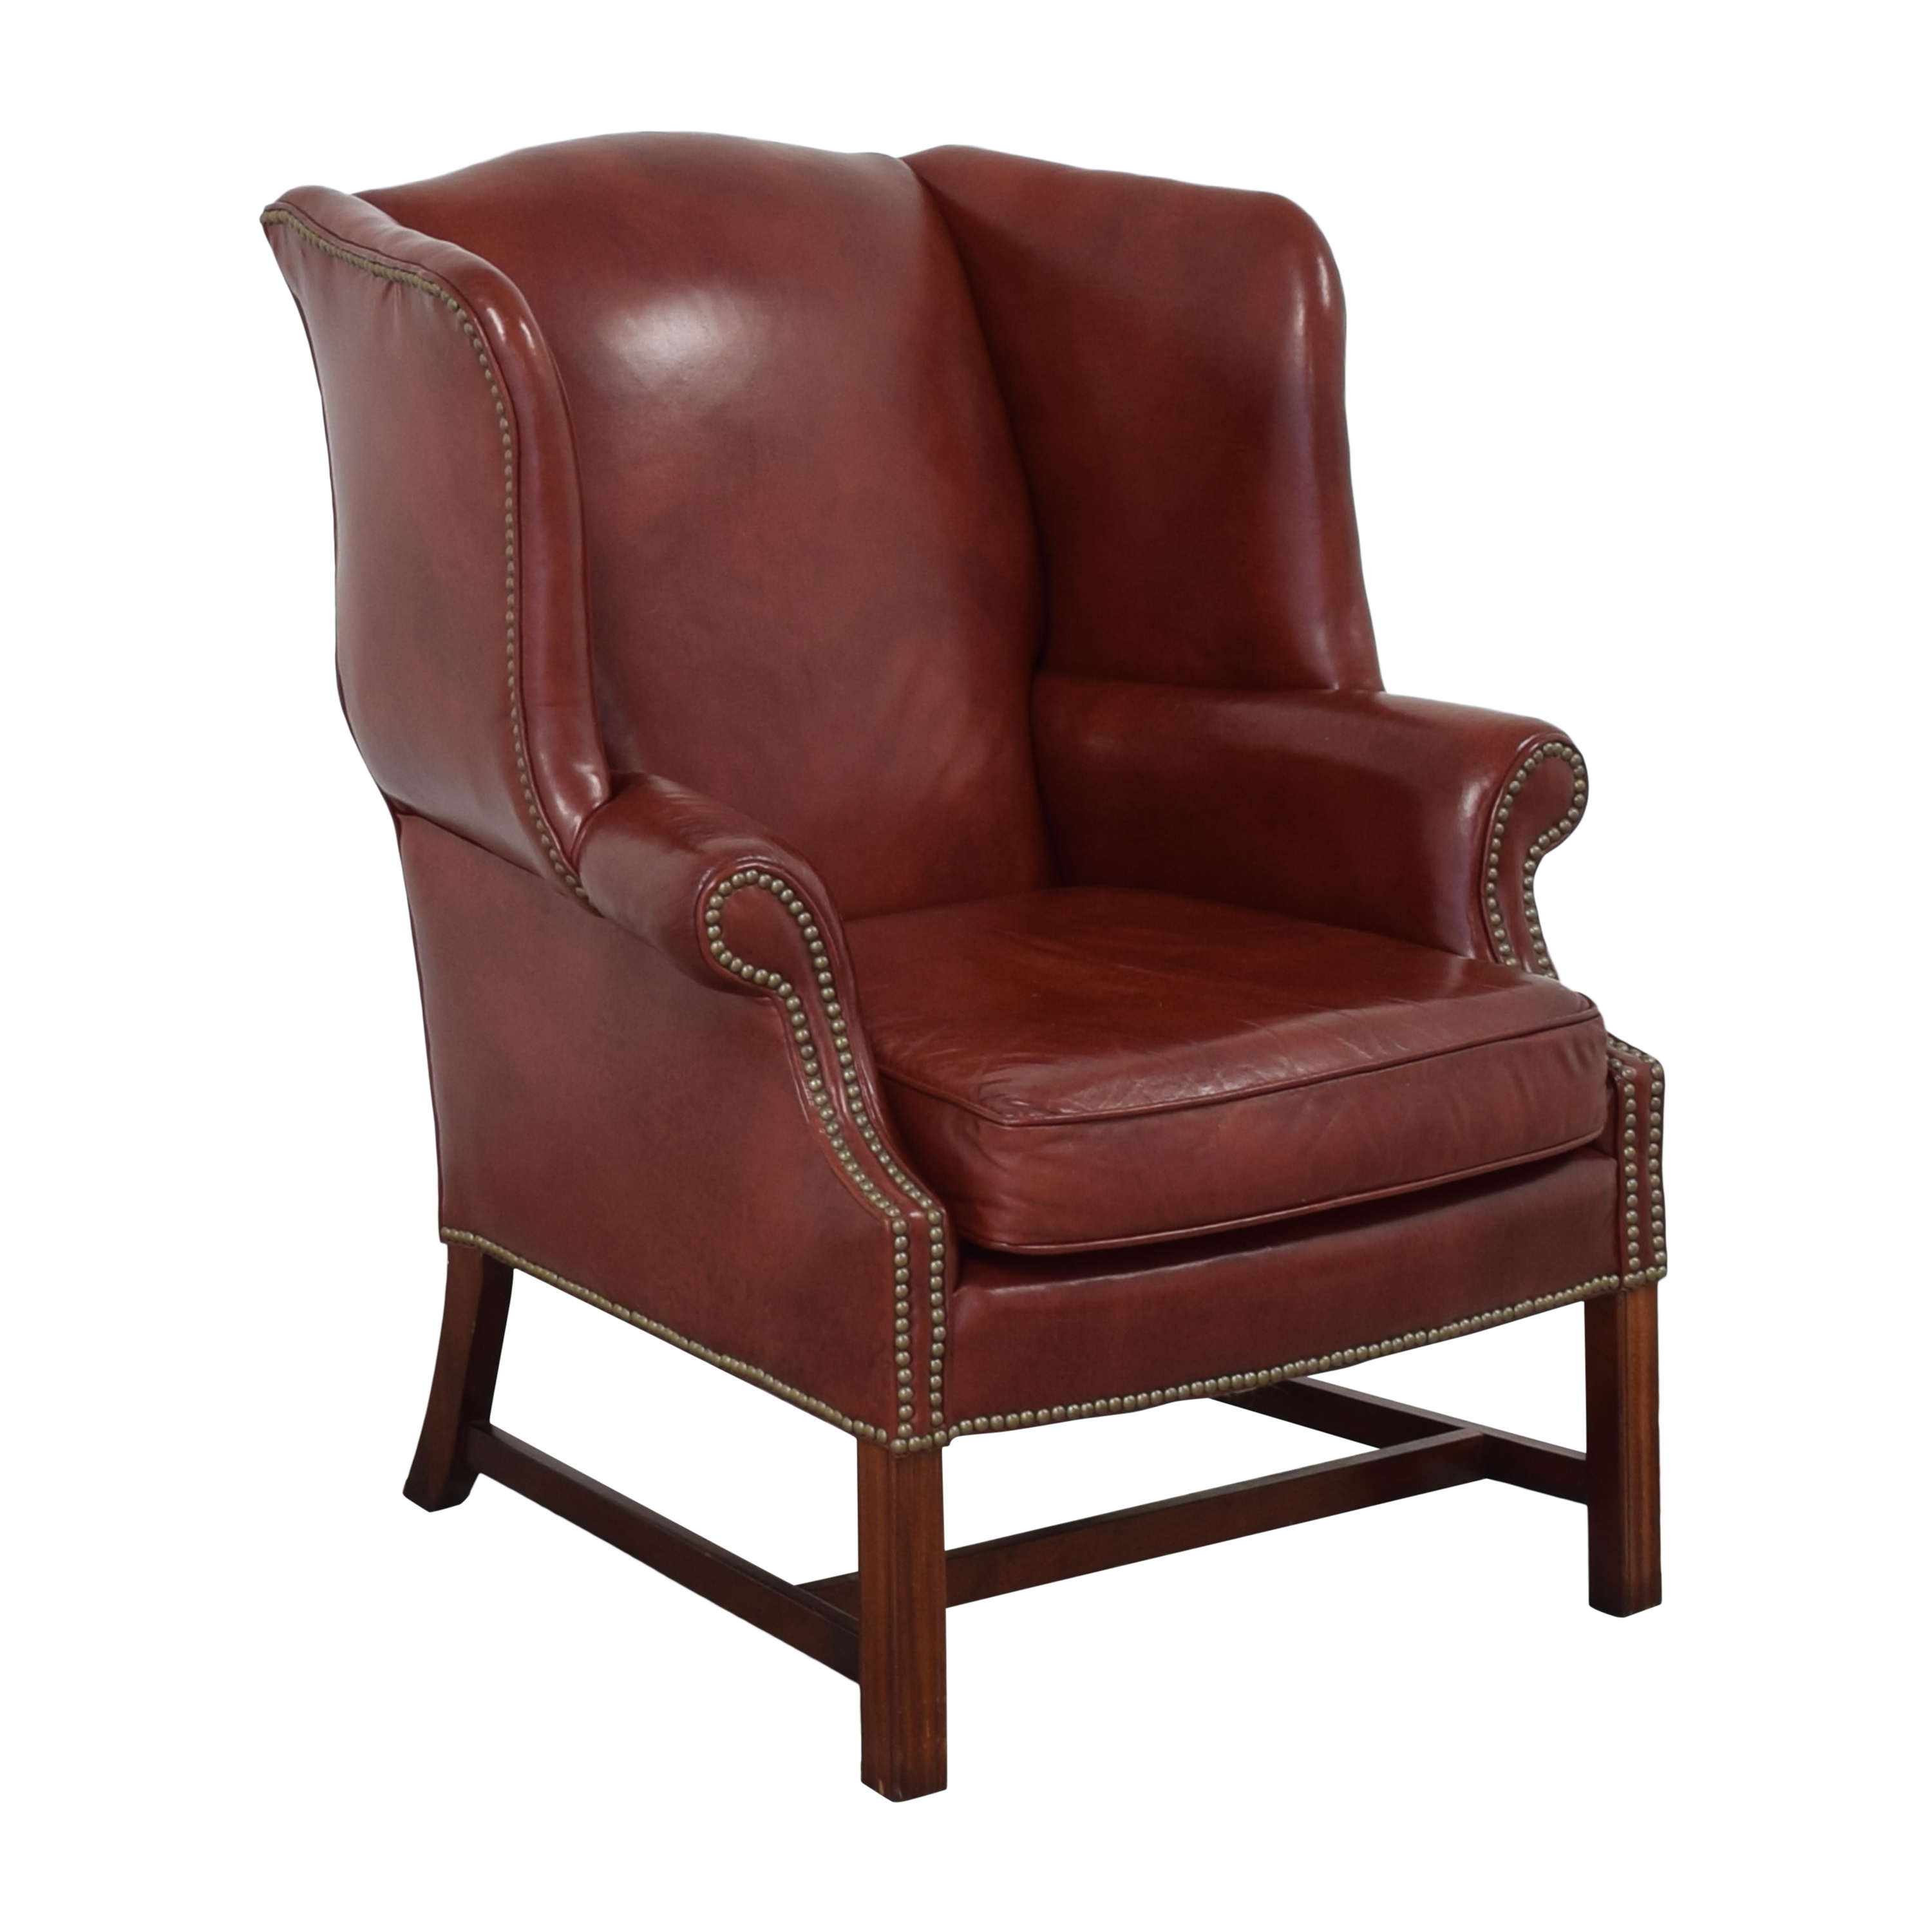 Classic Leather Classic Leather George III Wing Chair nj